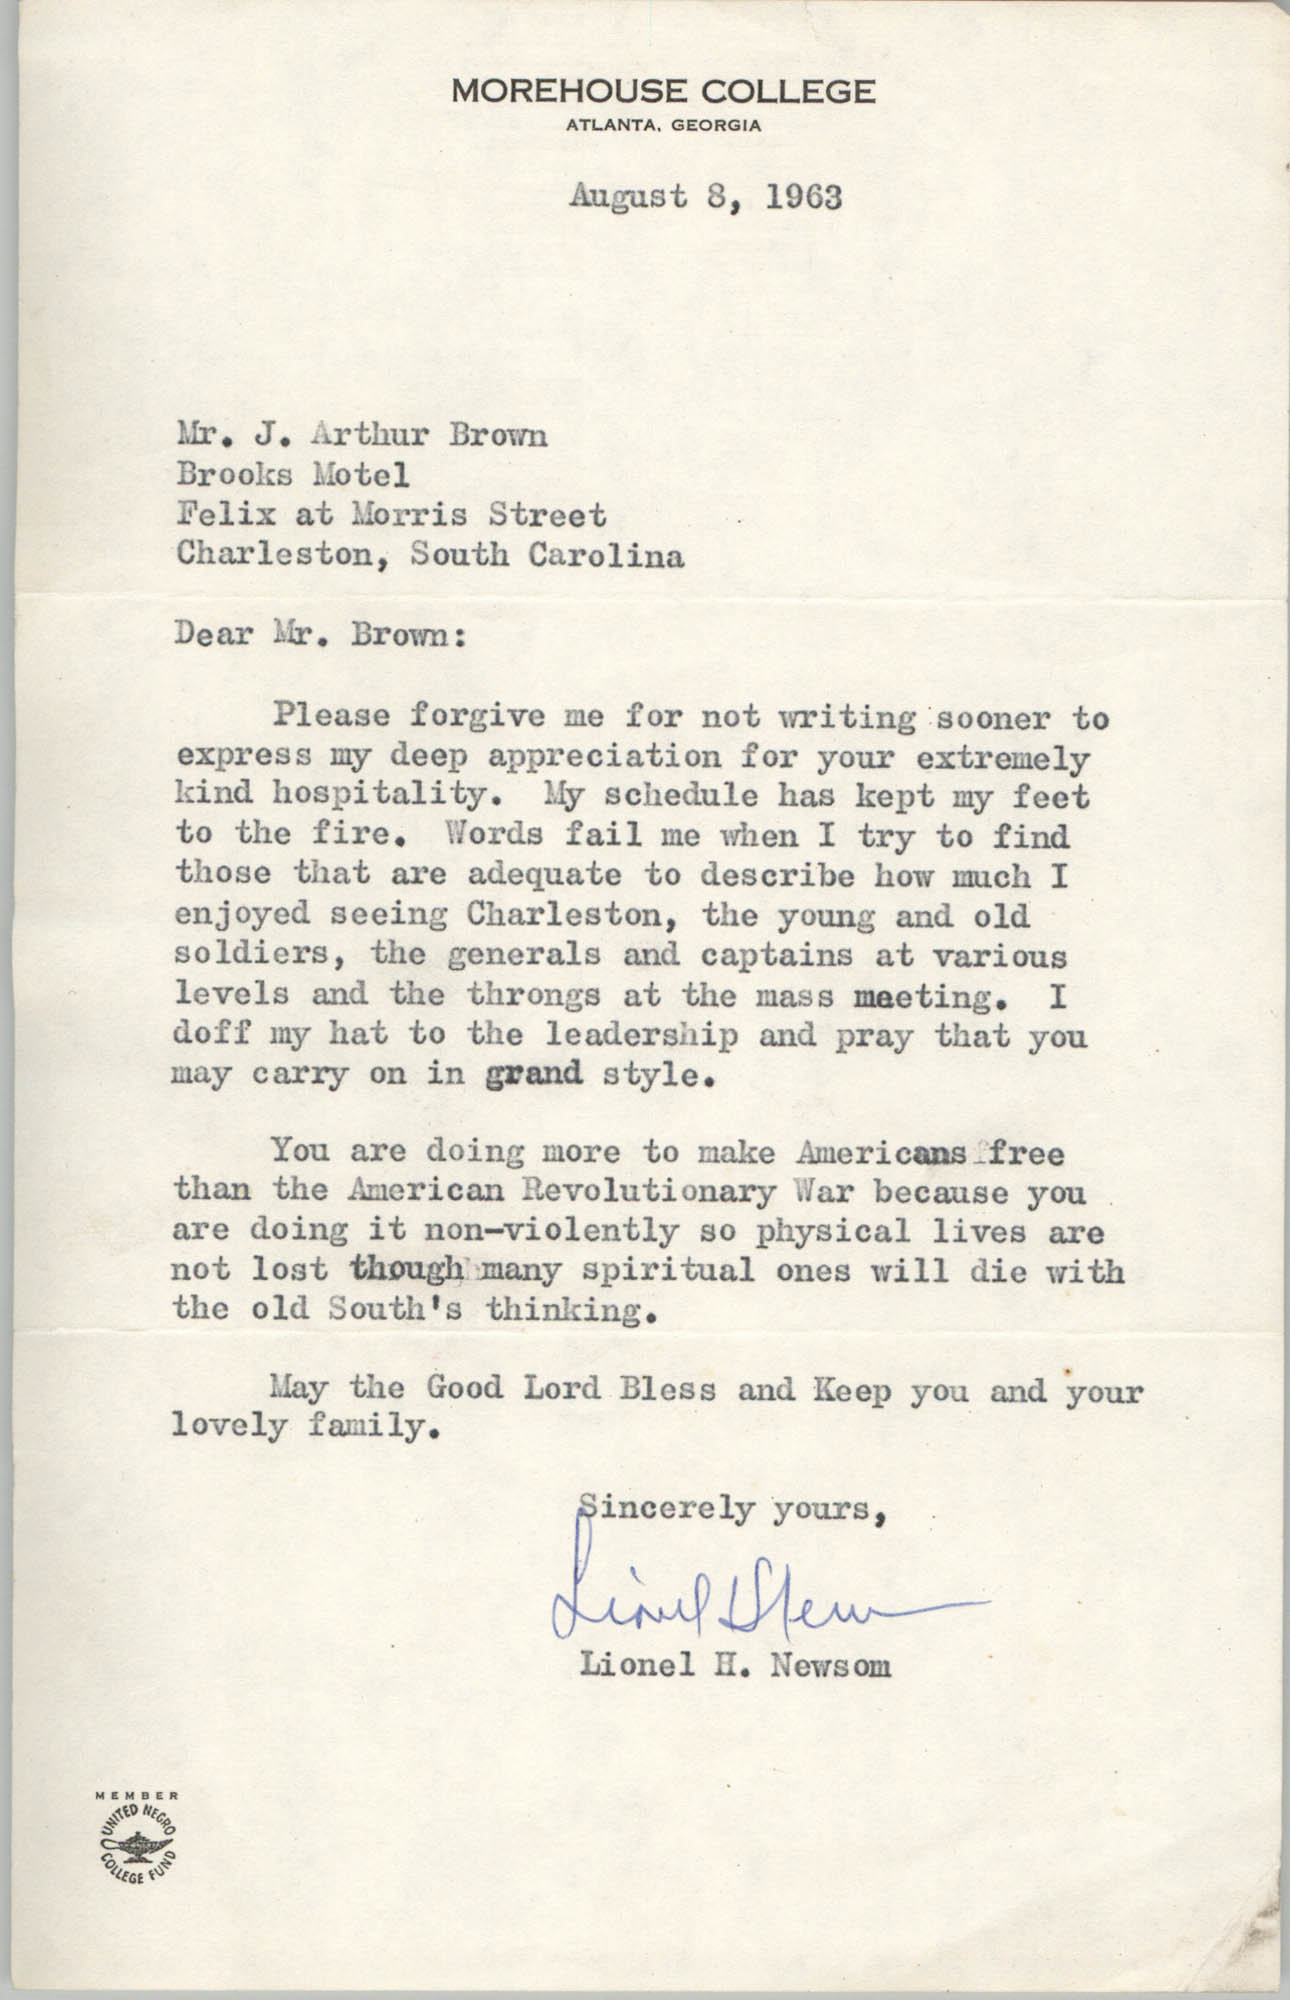 Letter from Lionel H. Newsom to J. Arthur Brown, August 8, 1963